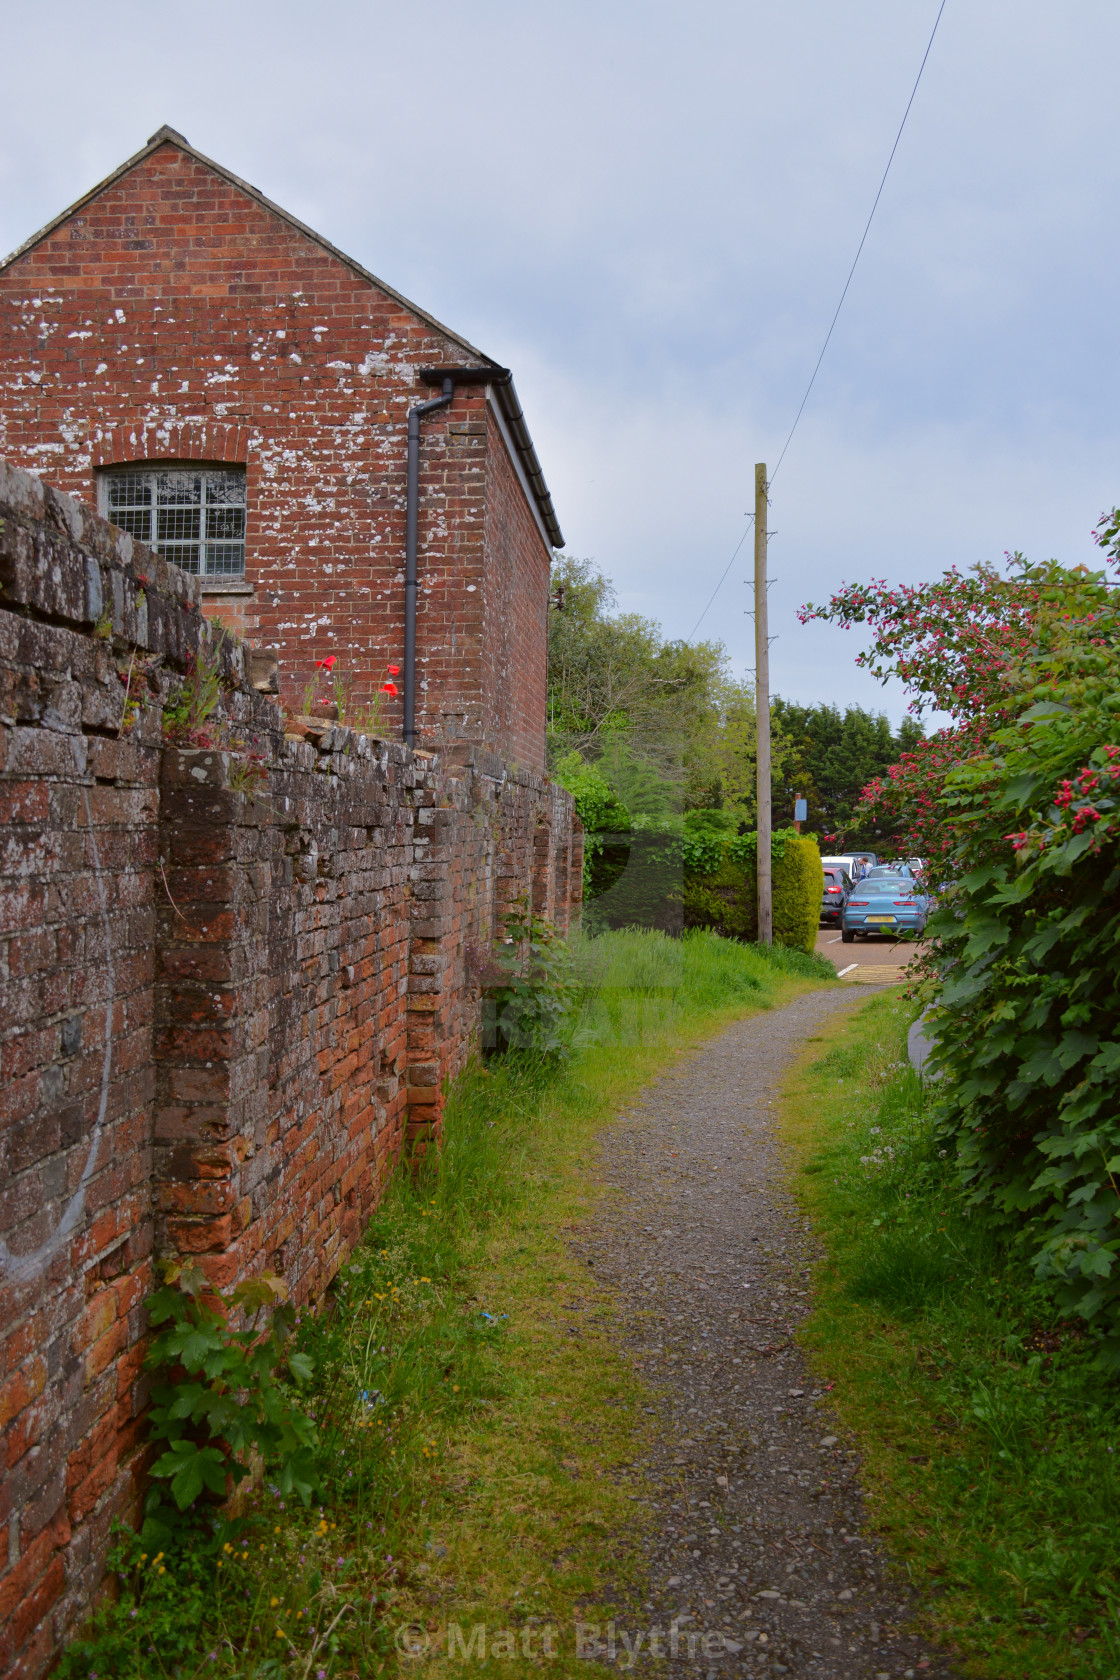 """Footpath and Old Red Brick Building"" stock image"